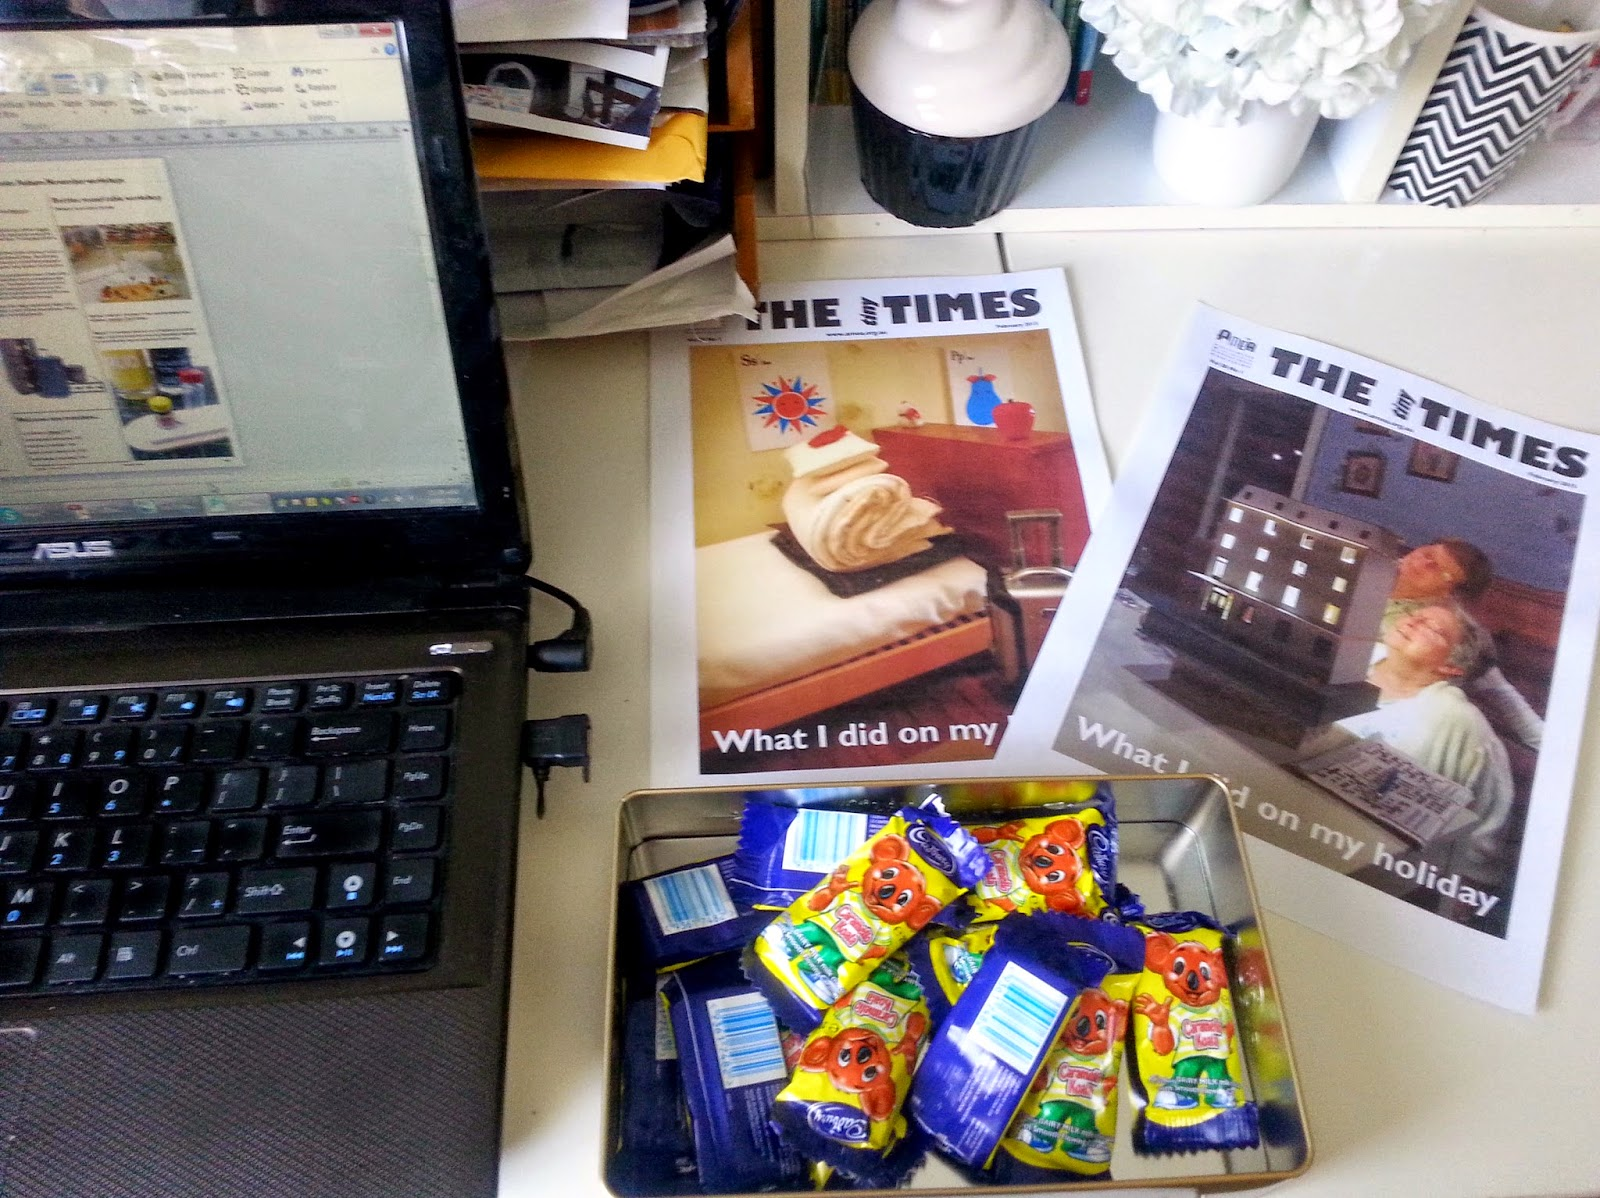 Laptop computer, a tin of Caramello Koalas and two sample covers of The tiny Times on a desk.